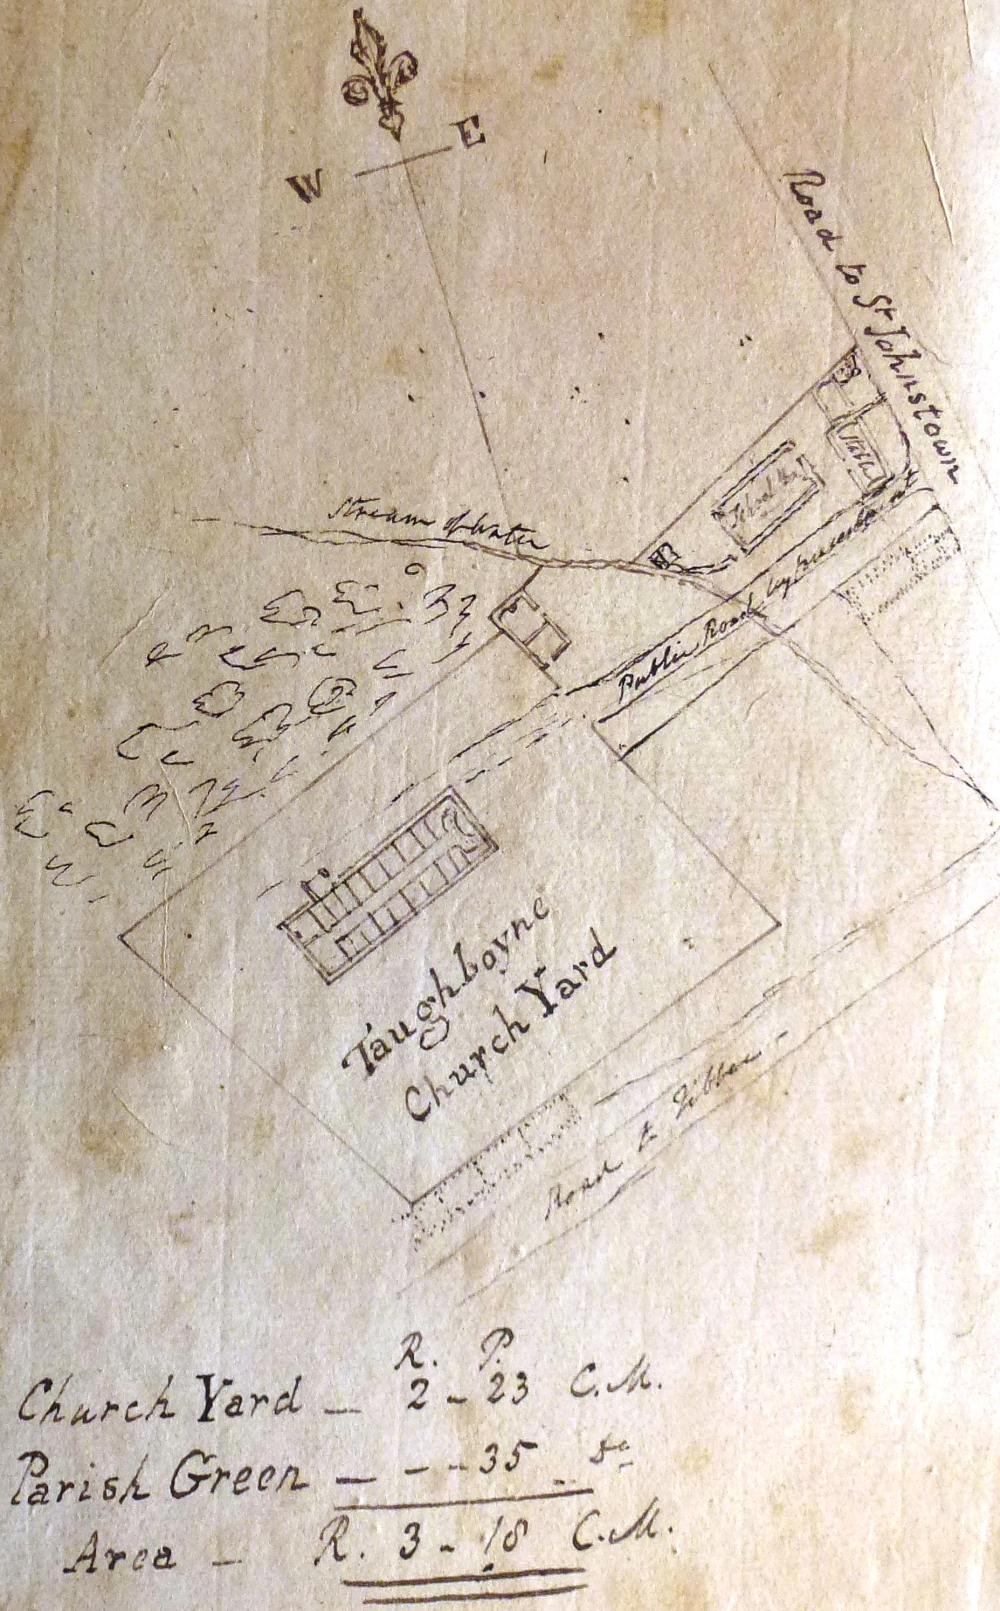 1.	Plan of Taughboyne parish church and church yard in its local context, c. 1808, from the parish vestry minute book, RCB Library P1091.5.1